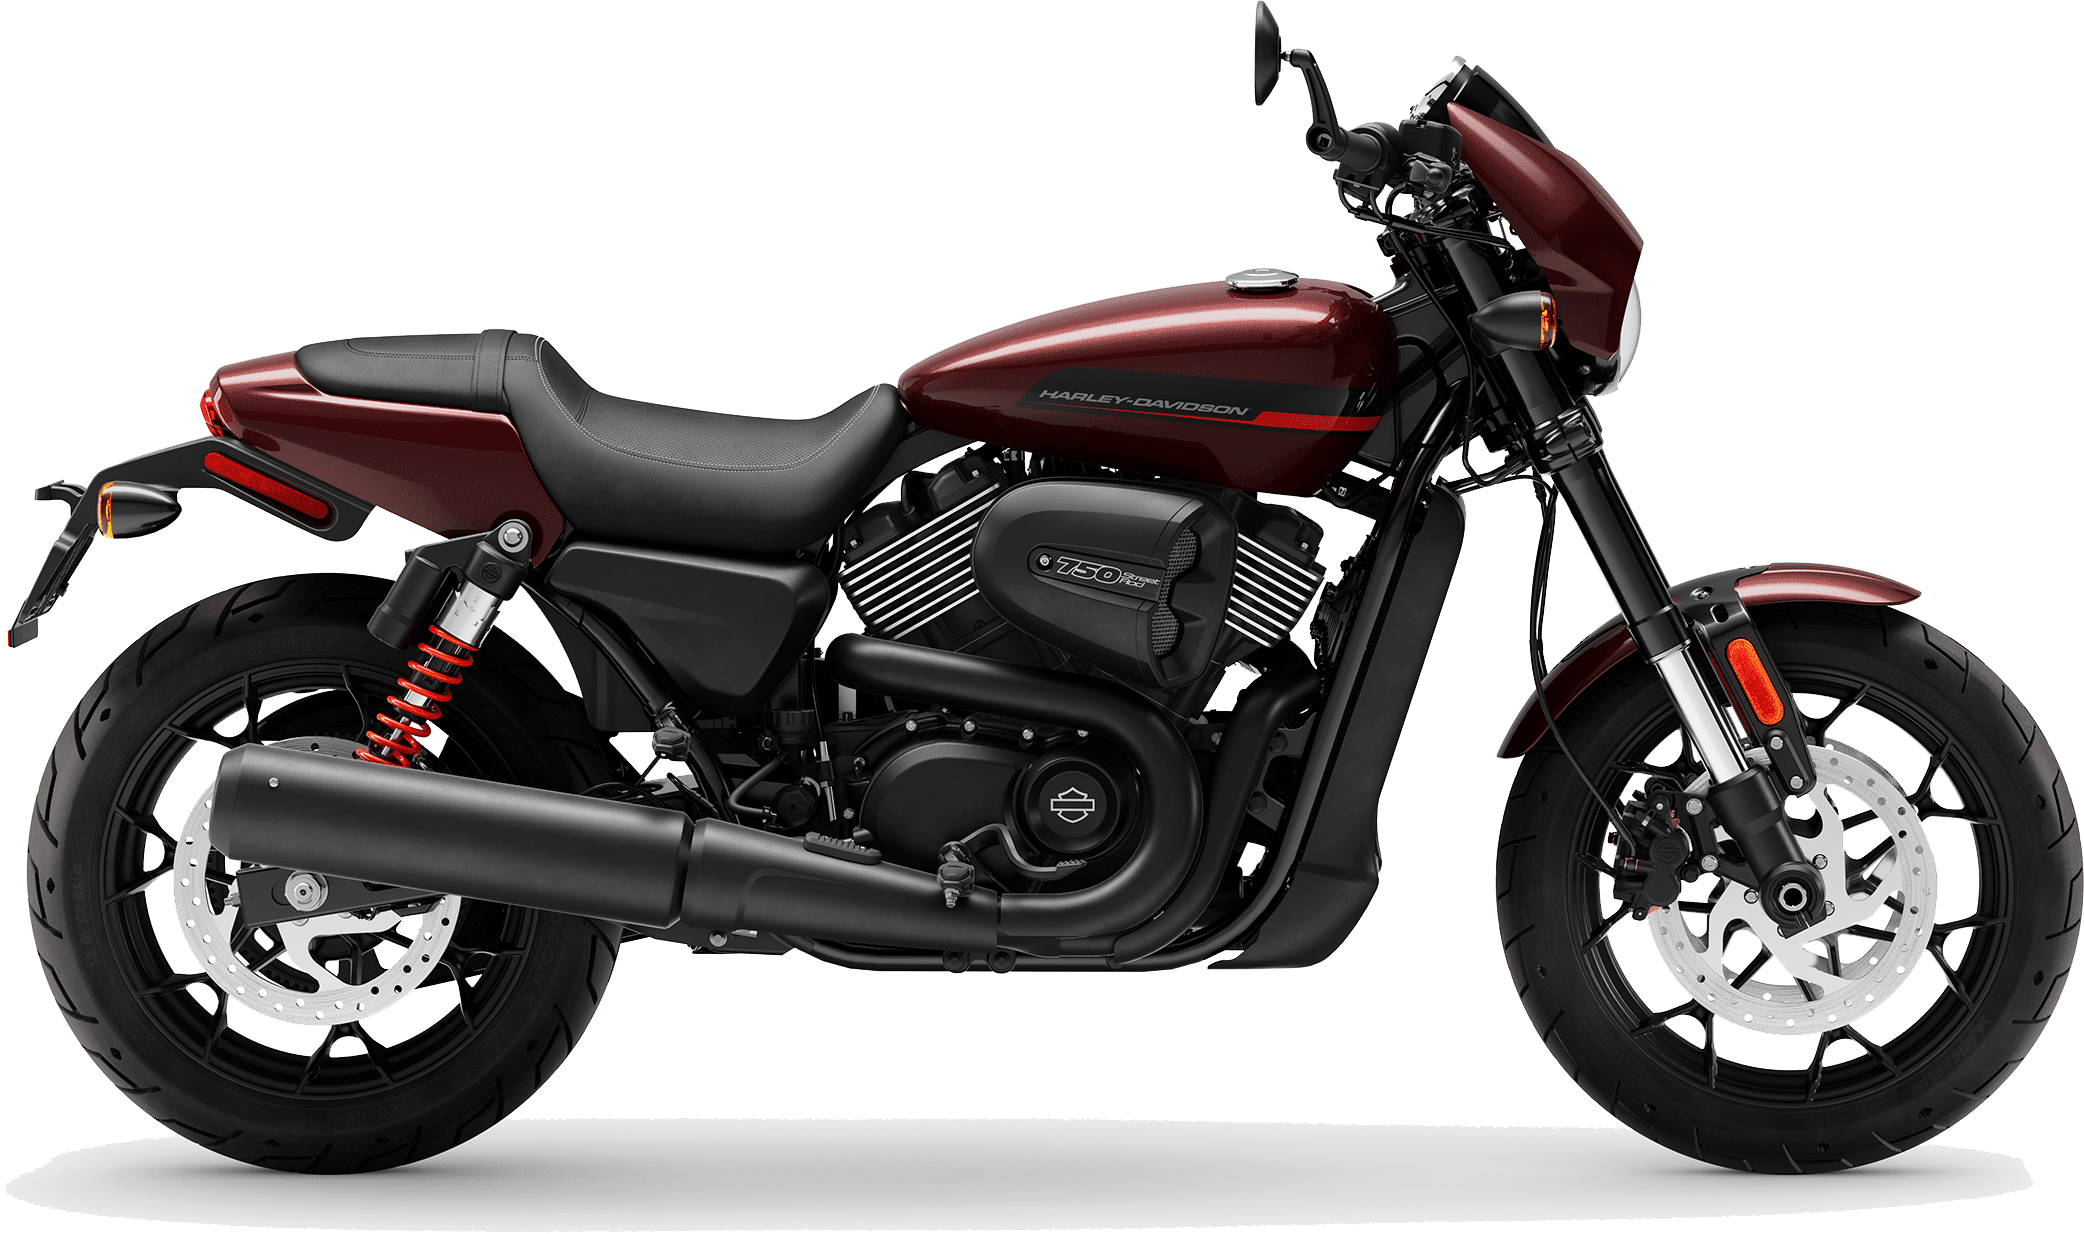 2019 Harley-Davidson H-D Street Rod Twisted Cherry